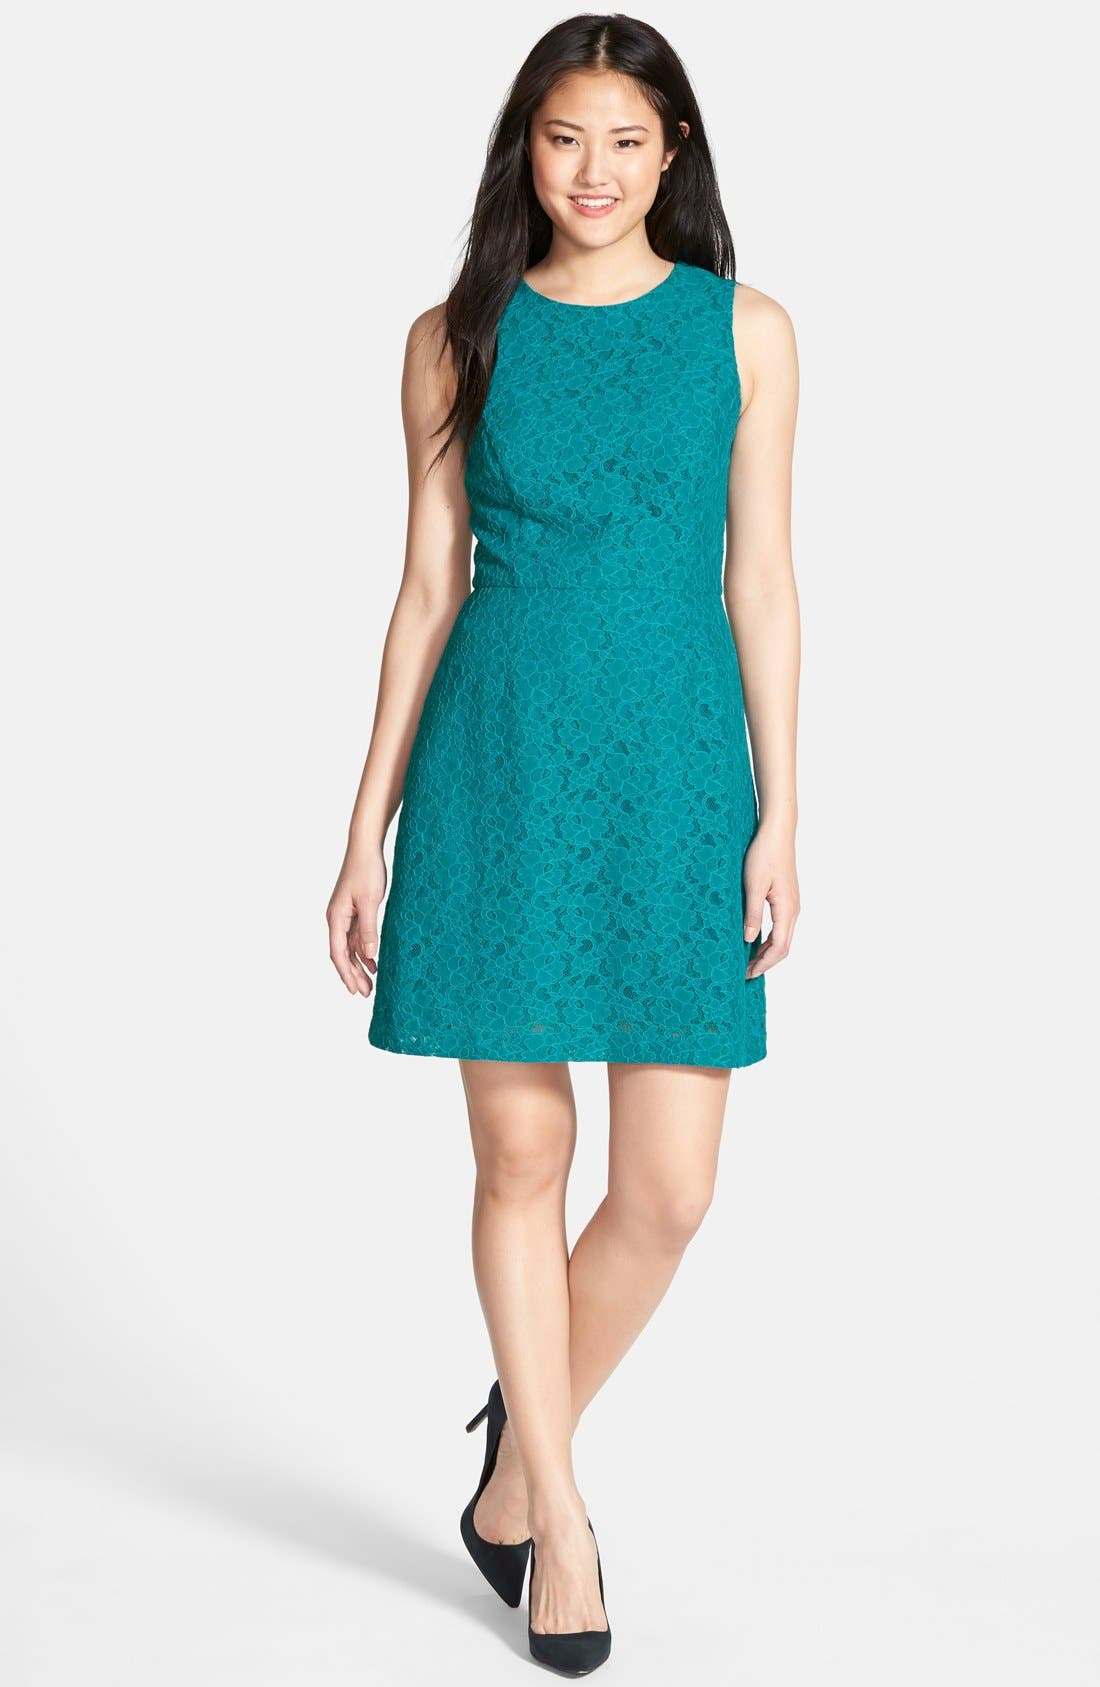 Alternate Image 1 Selected - Halogen® Lace Fit & Flare Dress (Regular & Petite)